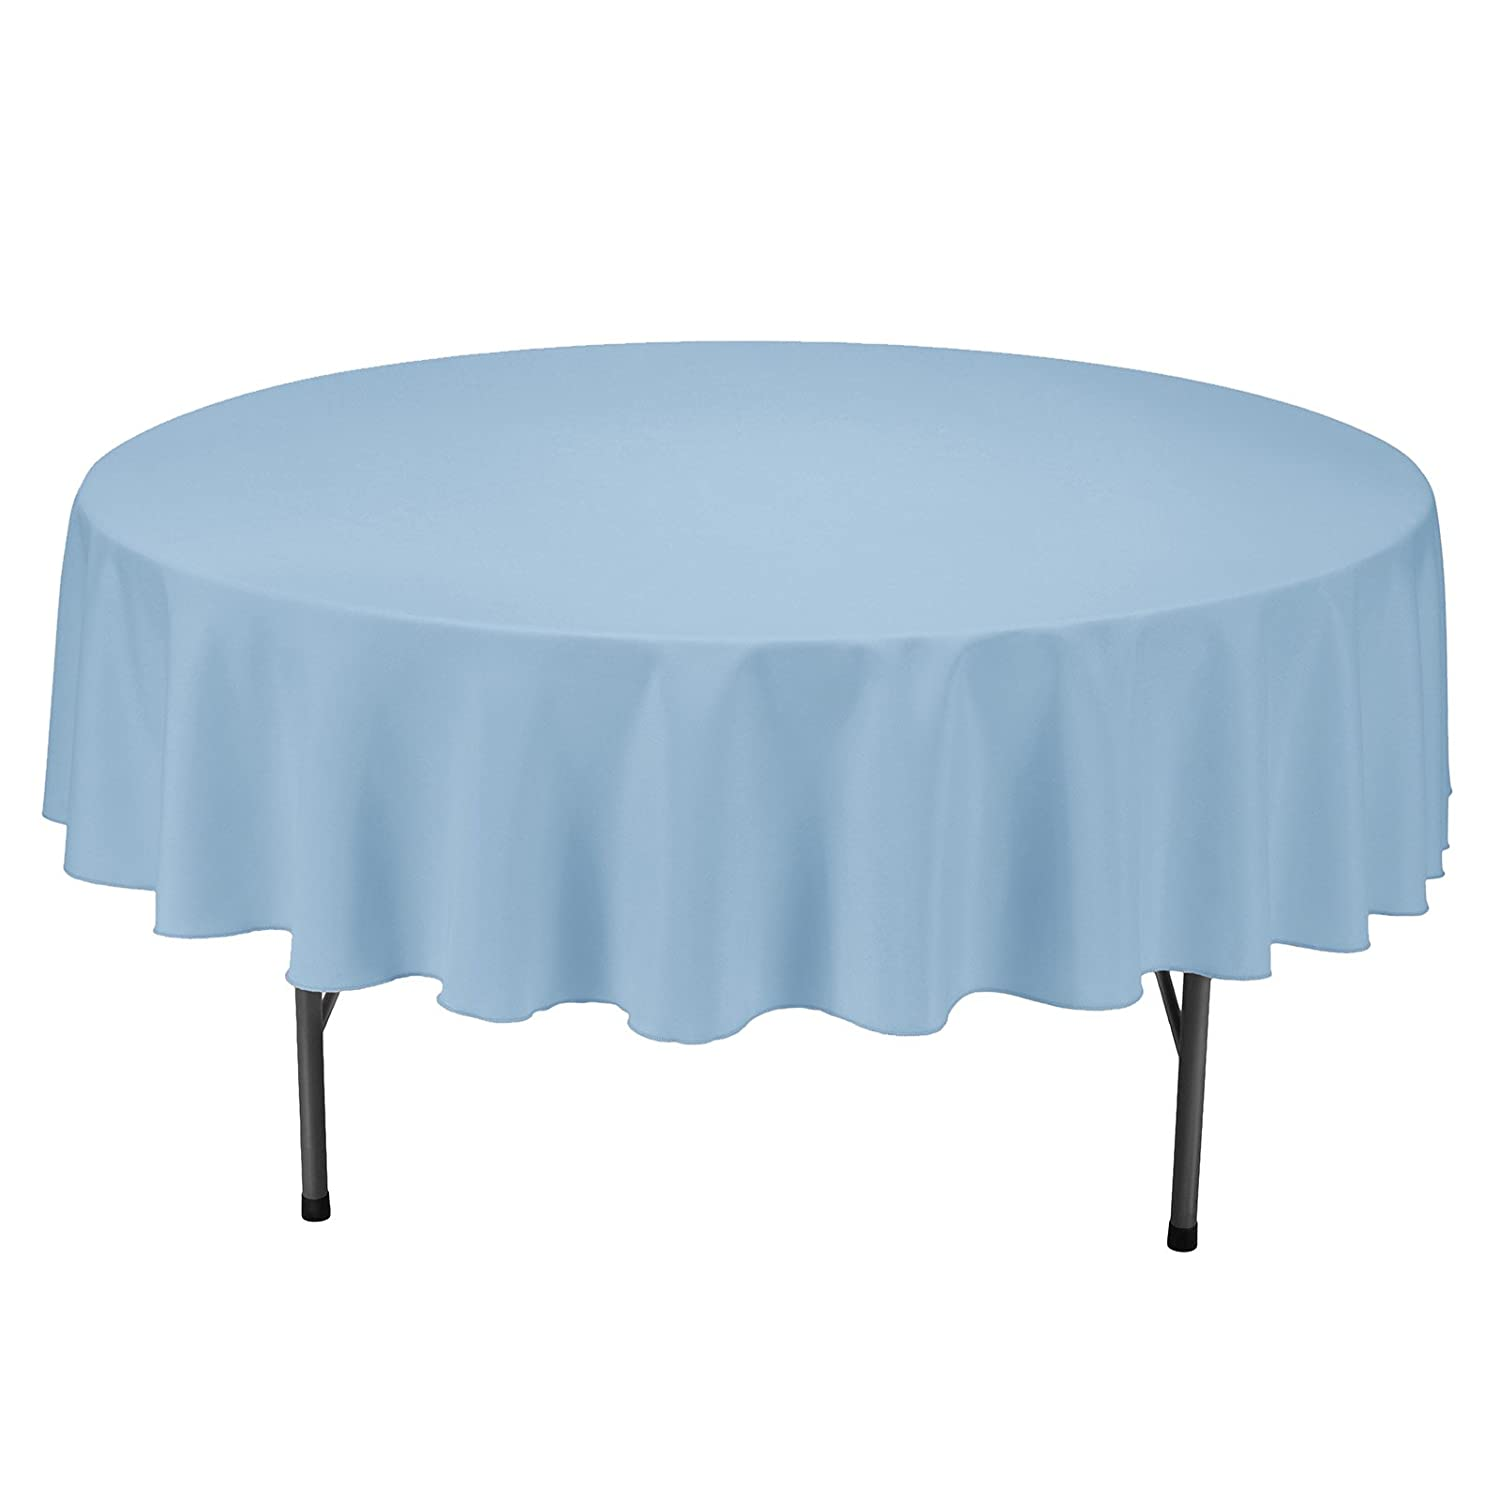 VEEYOO Tablecloth 90 inch Round Solid Polyester Table Cloth for Wedding Restaurant Party Kitchen Dining Table Christmas, Baby Blue